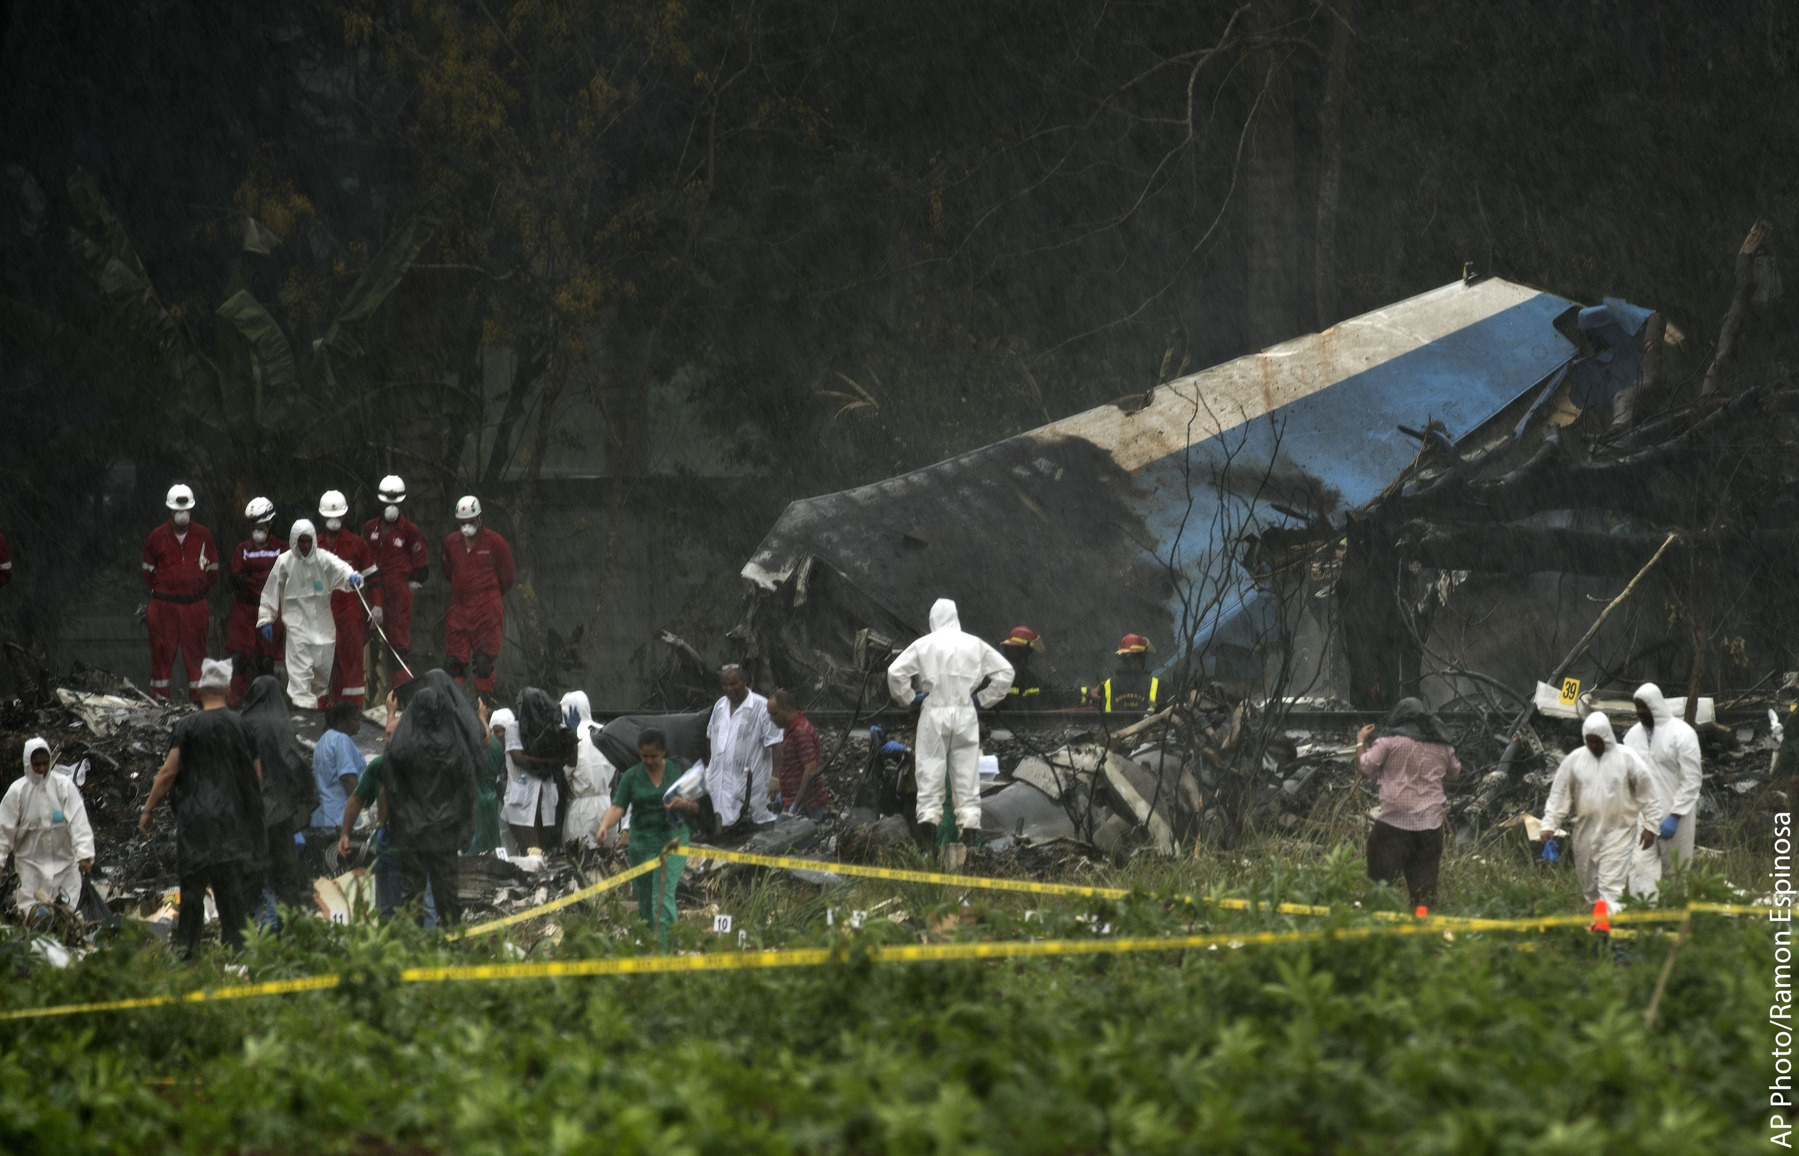 Witness Family Dies In Plane Crash In Cuba Jw Org News Jw.org is the official source for events, activities, and community efforts of jehovah's witnesses. witness family dies in plane crash in